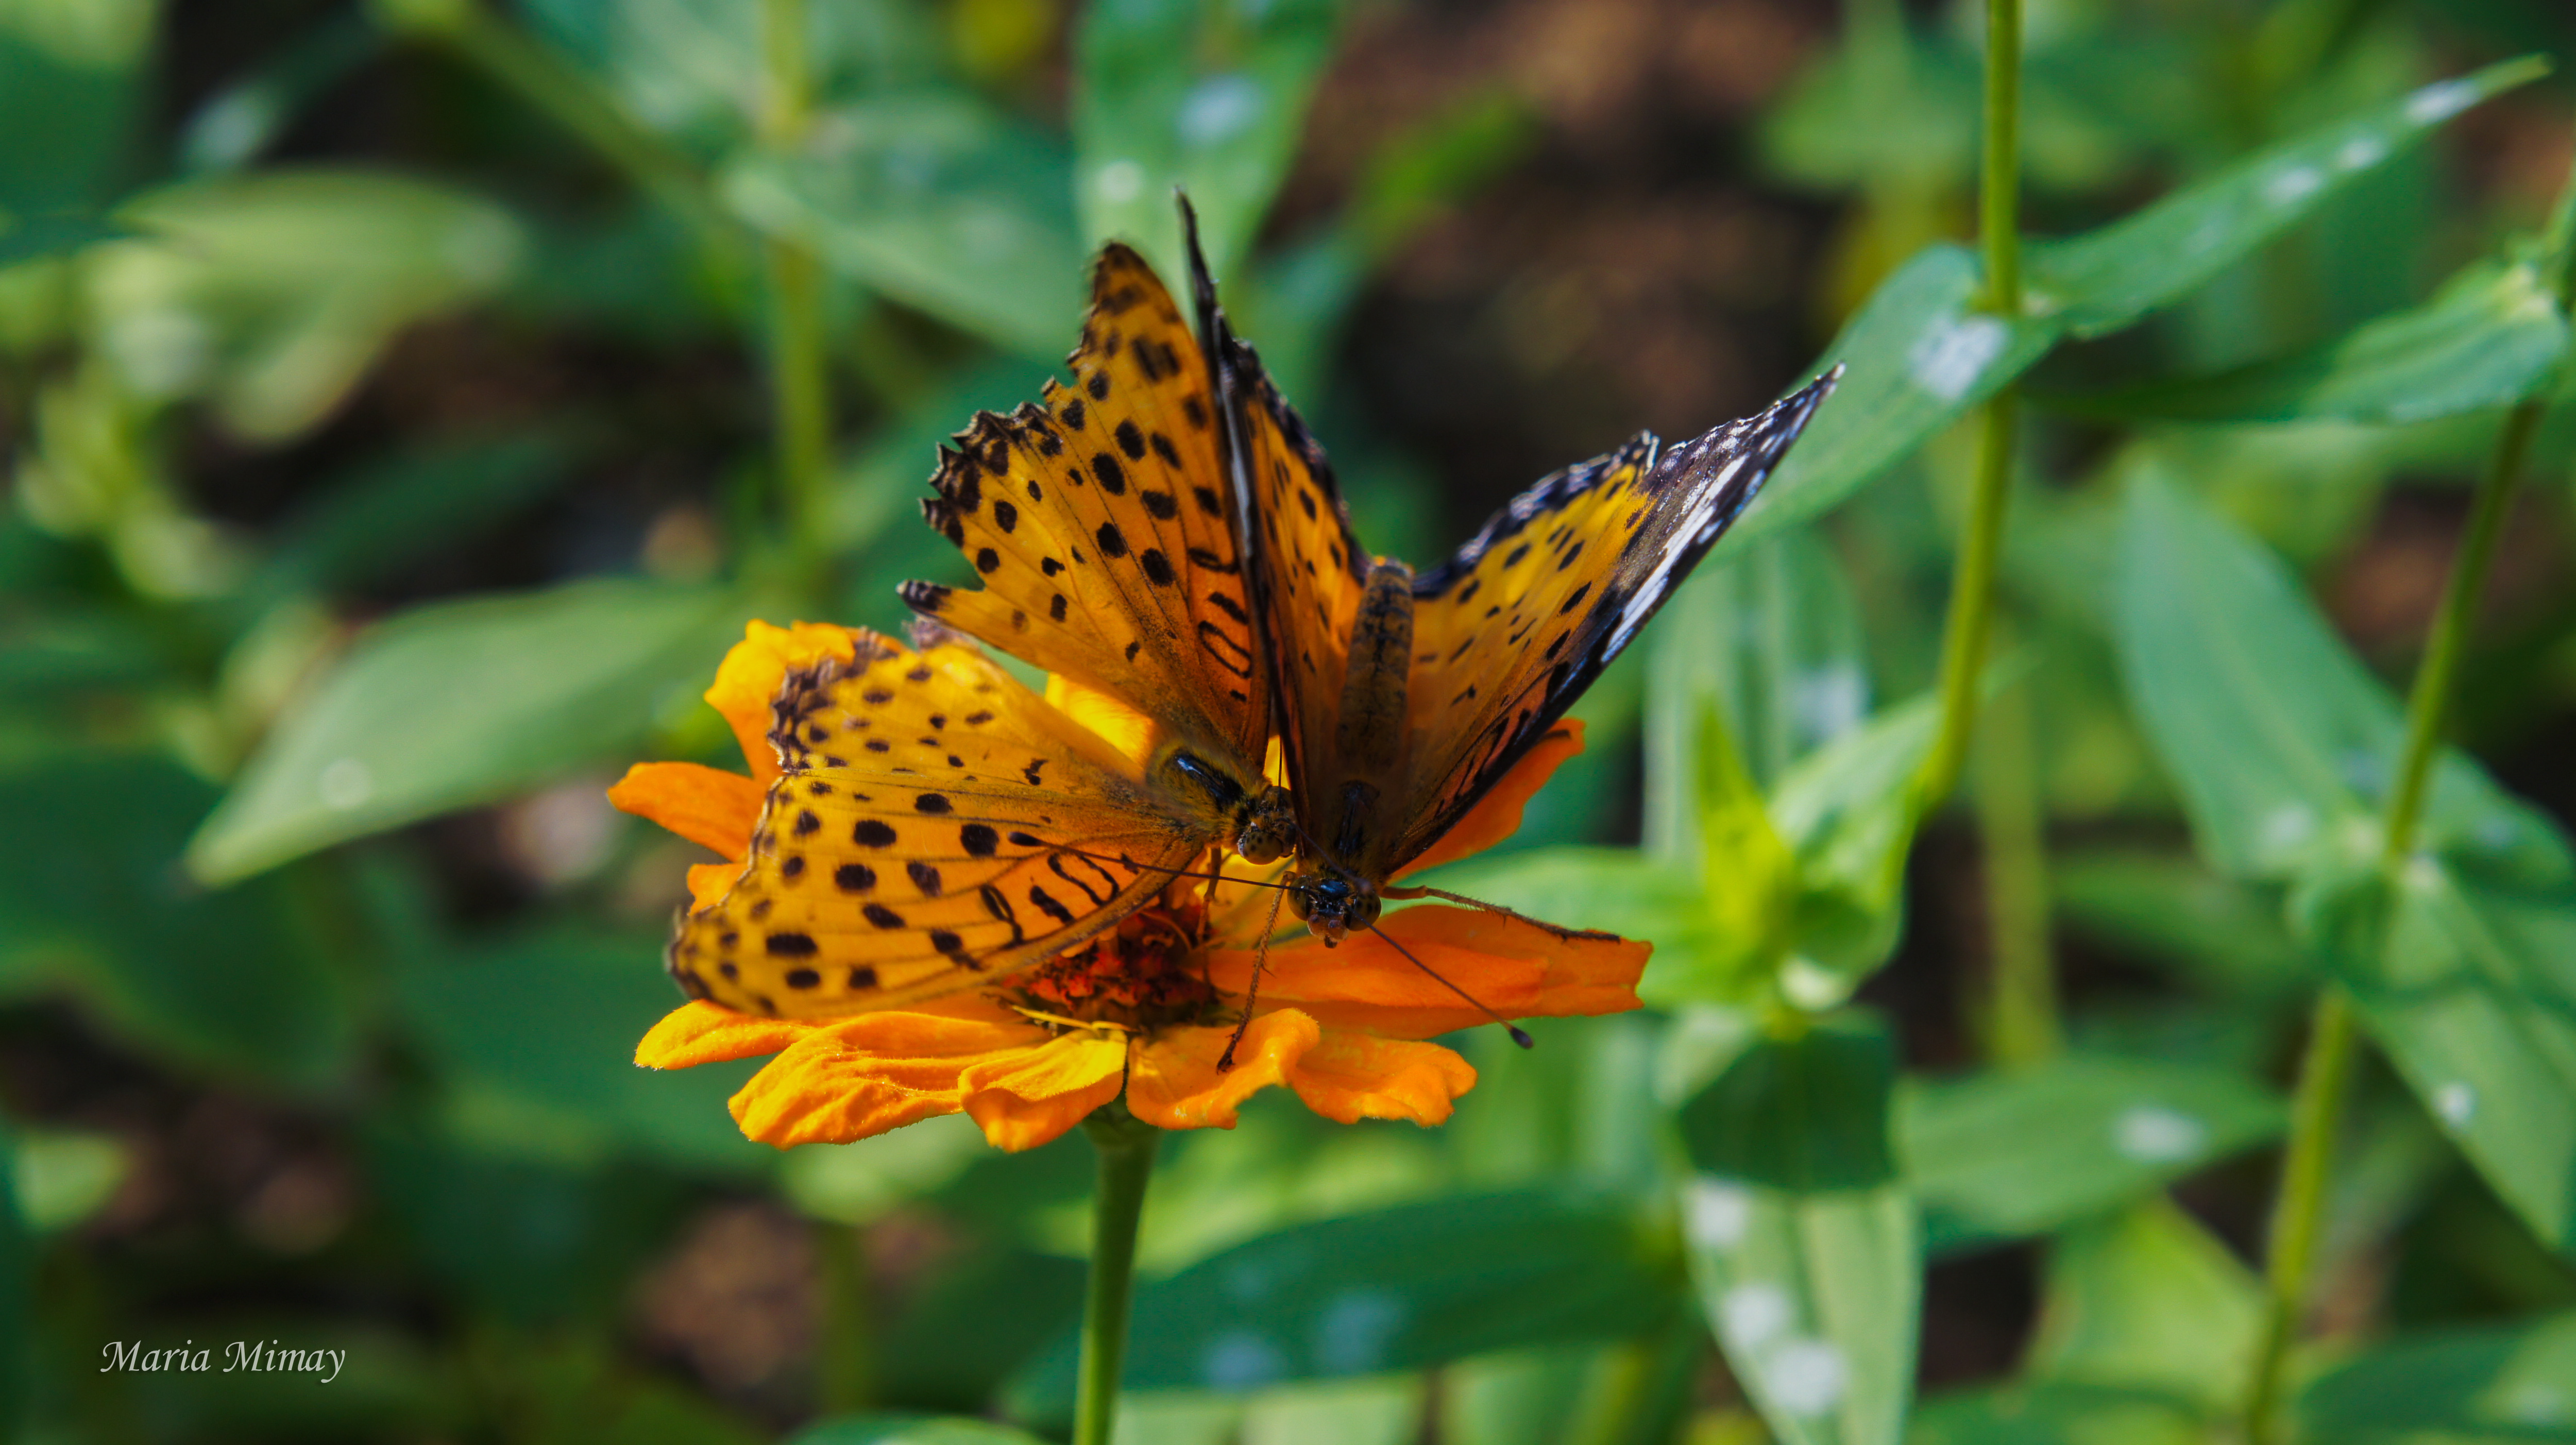 If You Are In Seoul, And Youu0027re A Butterfly Lover Just Like Me, A Visit To  This Butterfly Garden At Seoul Forest Will Be Glorious.